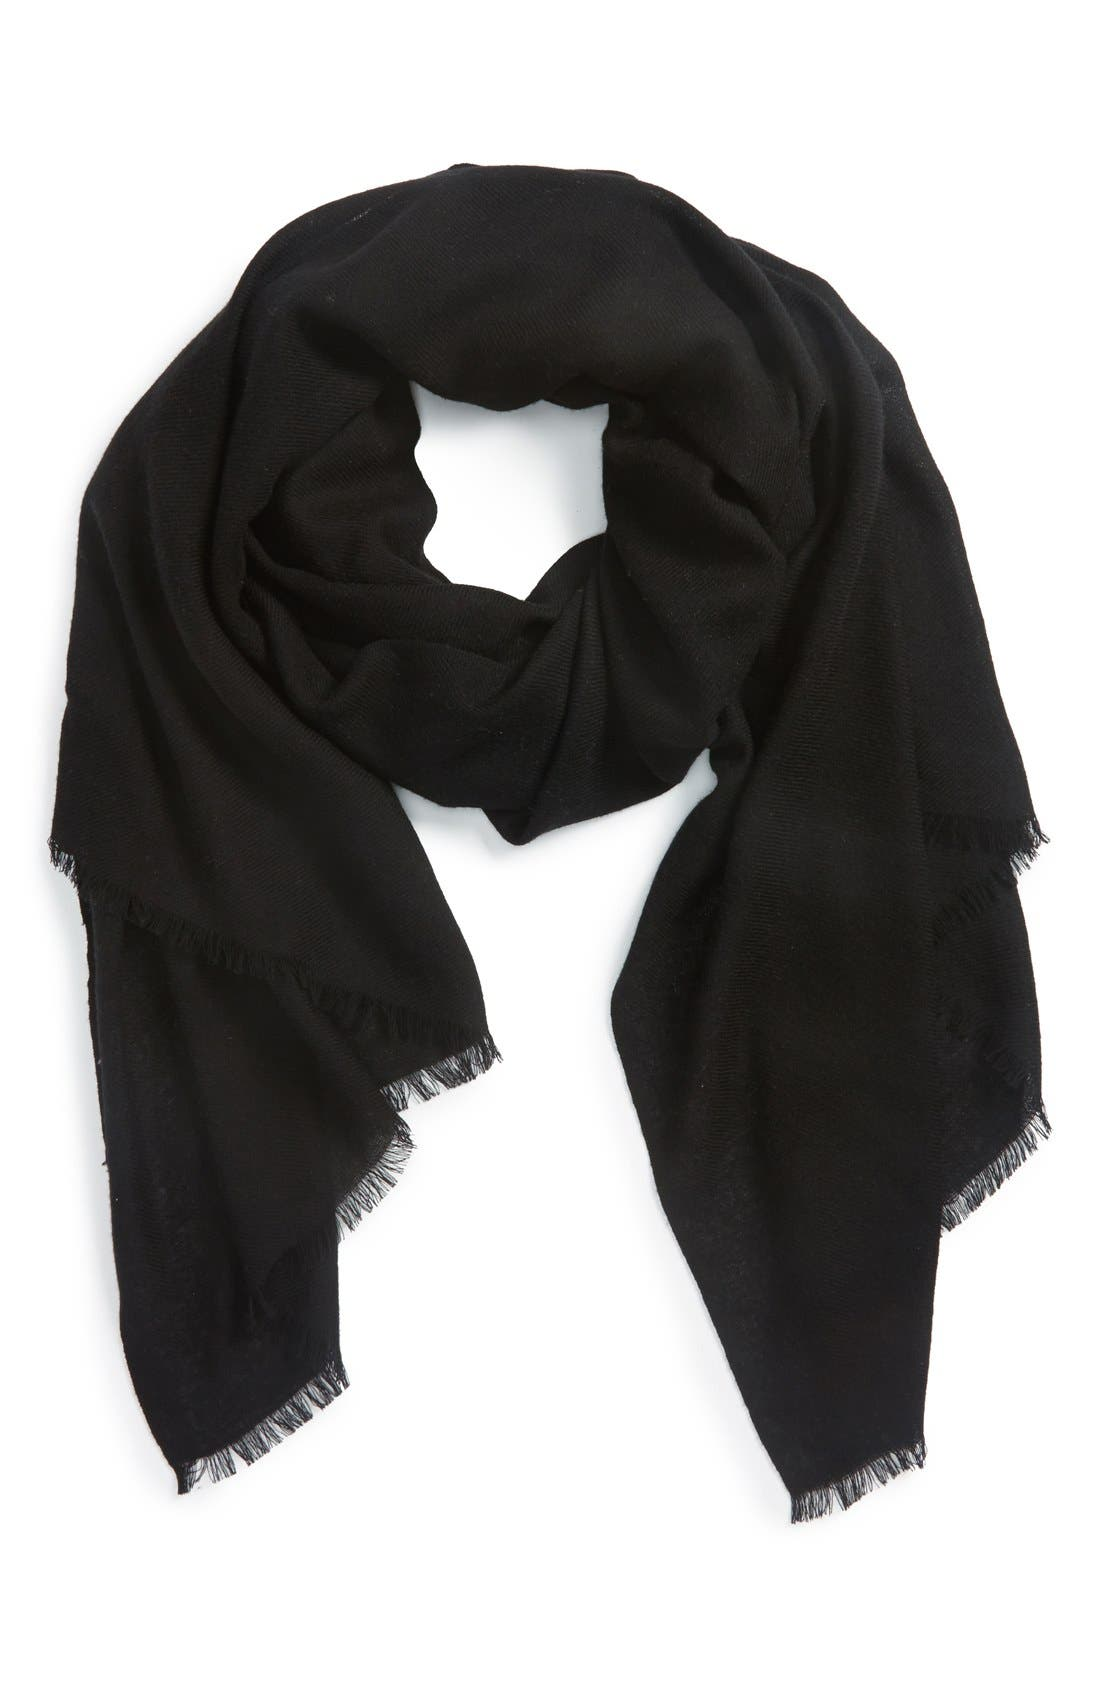 NORDSTROM, Wool & Cashmere Wrap, Main thumbnail 1, color, 001